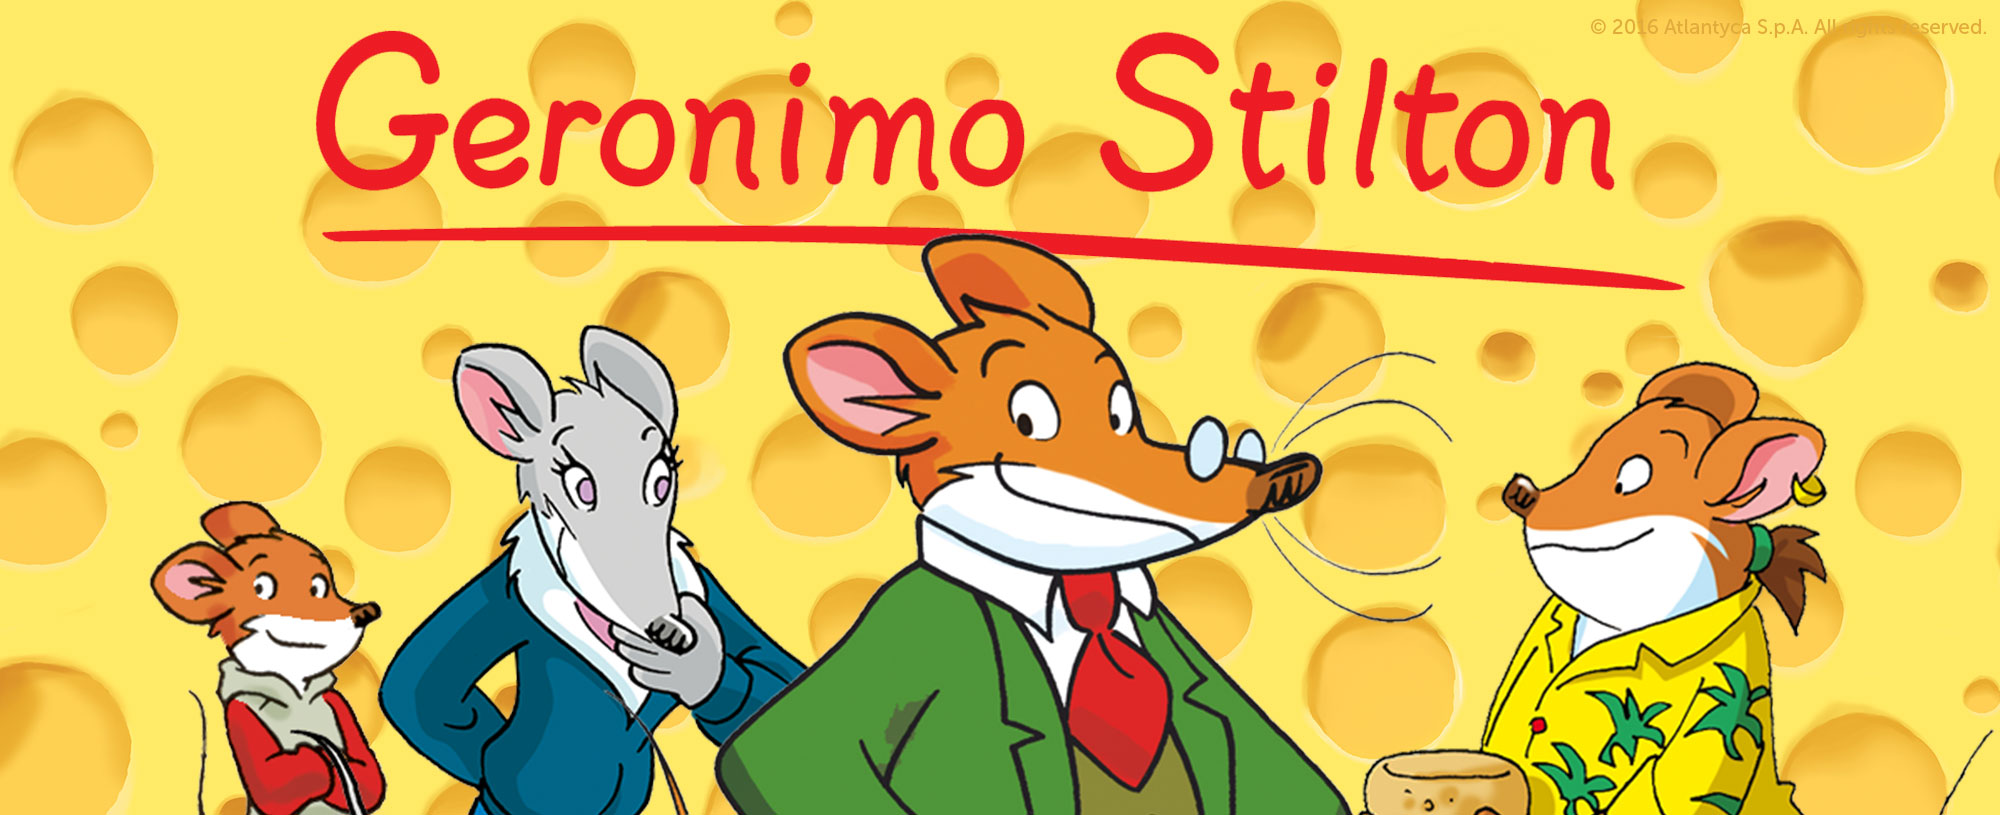 Geronimo Stilton | Scholastic Kids